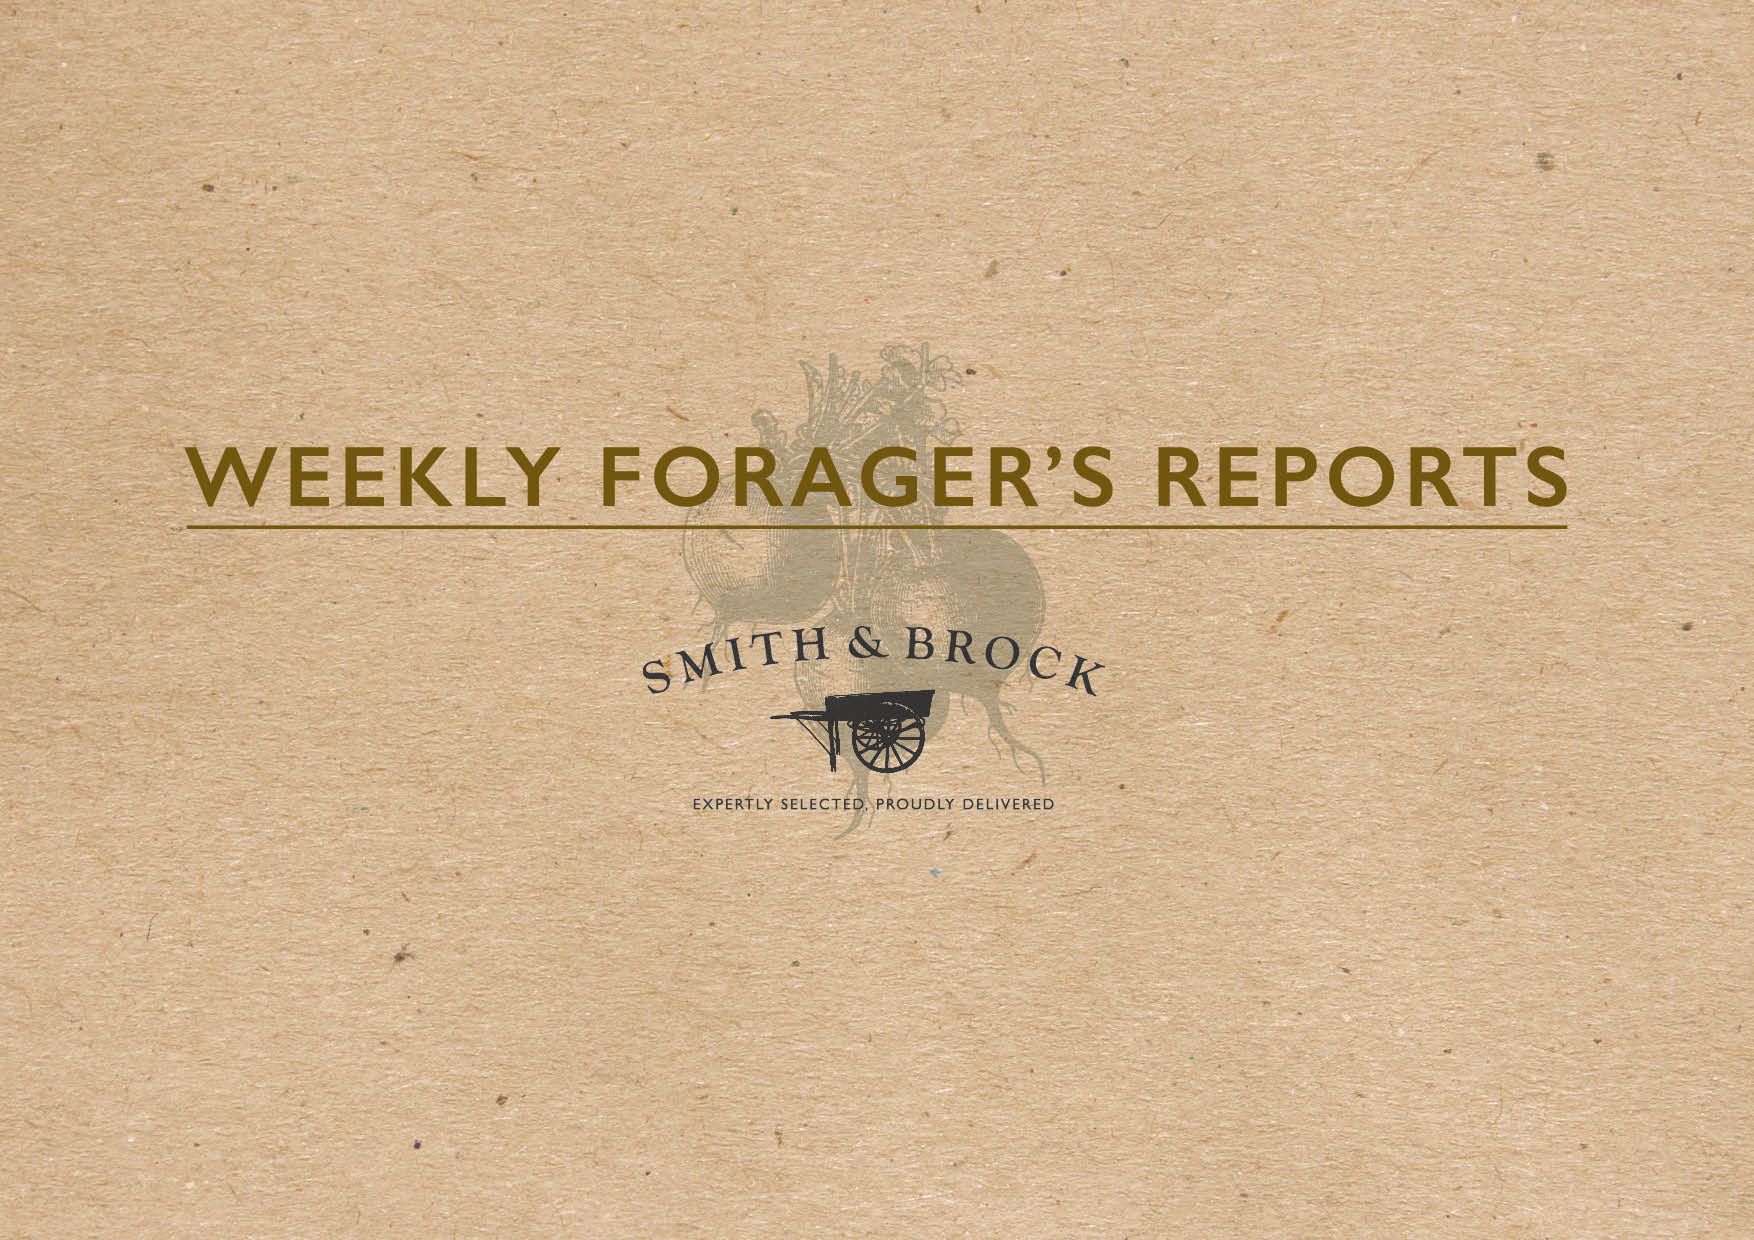 smith and brock forager's report